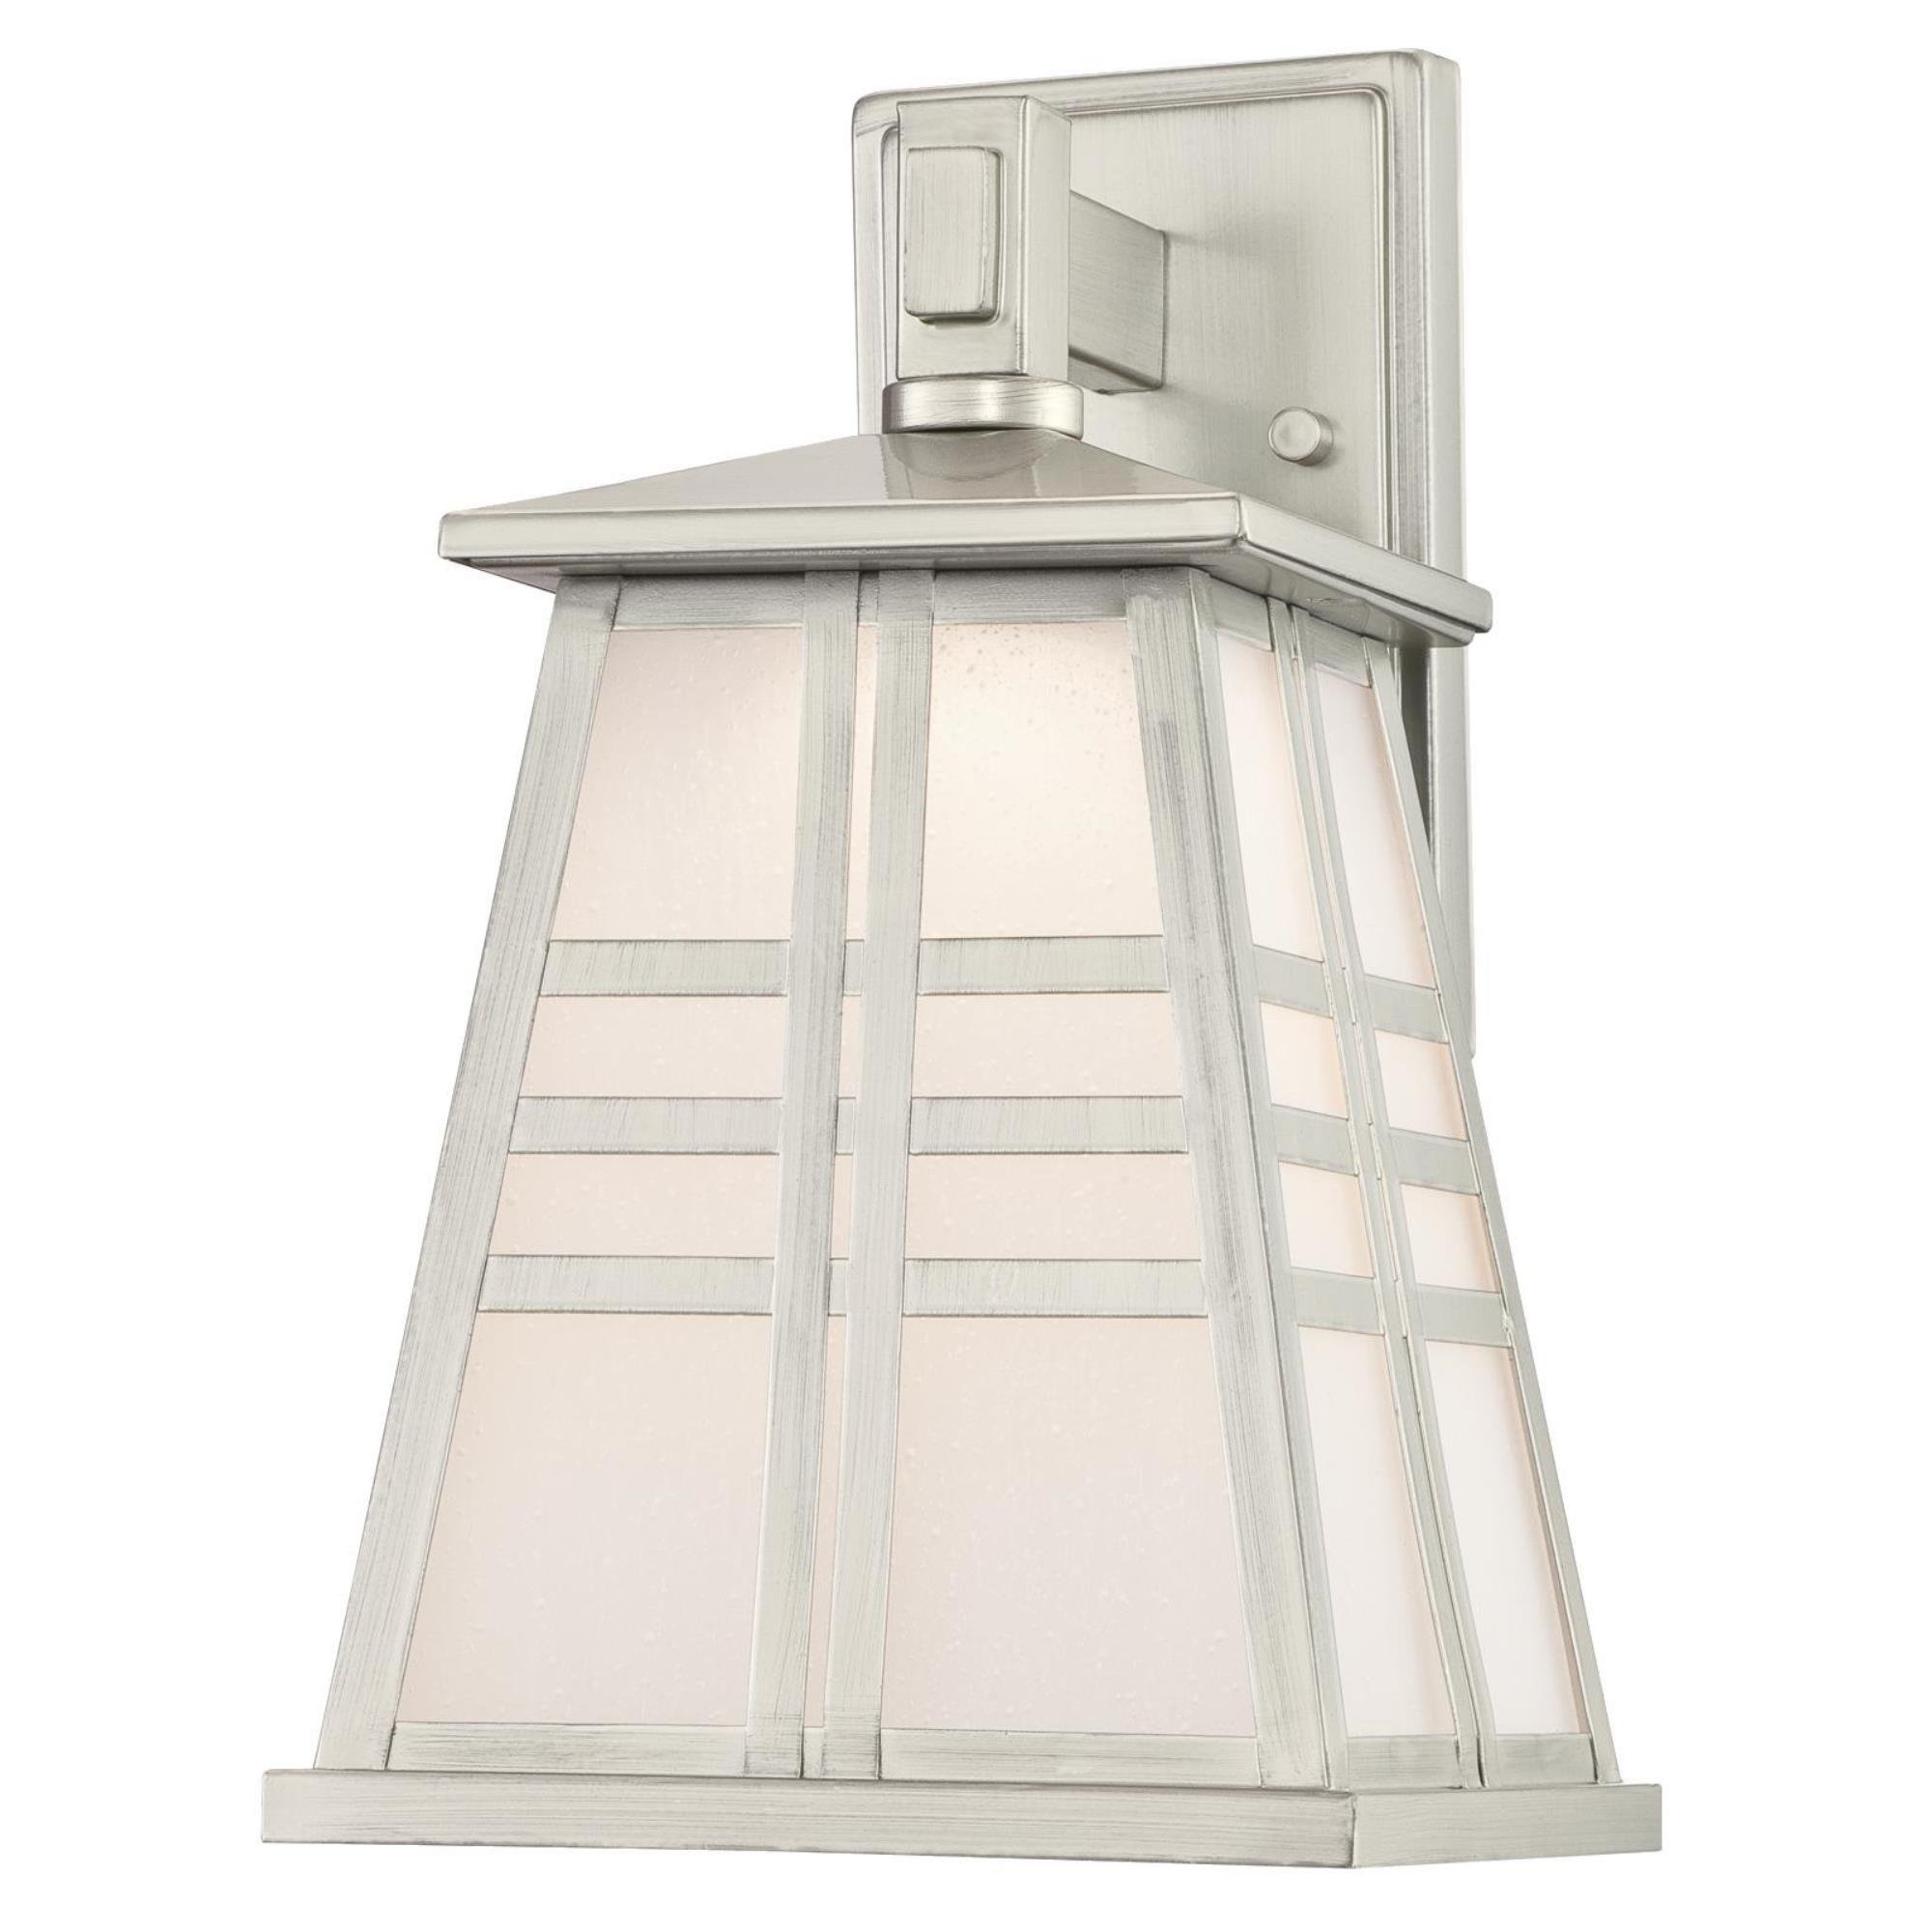 Westinghouse 6339600 Creekview One-Light LED Outdoor Wall Fixture with Frosted Seeded Glass, Brushed Nickel